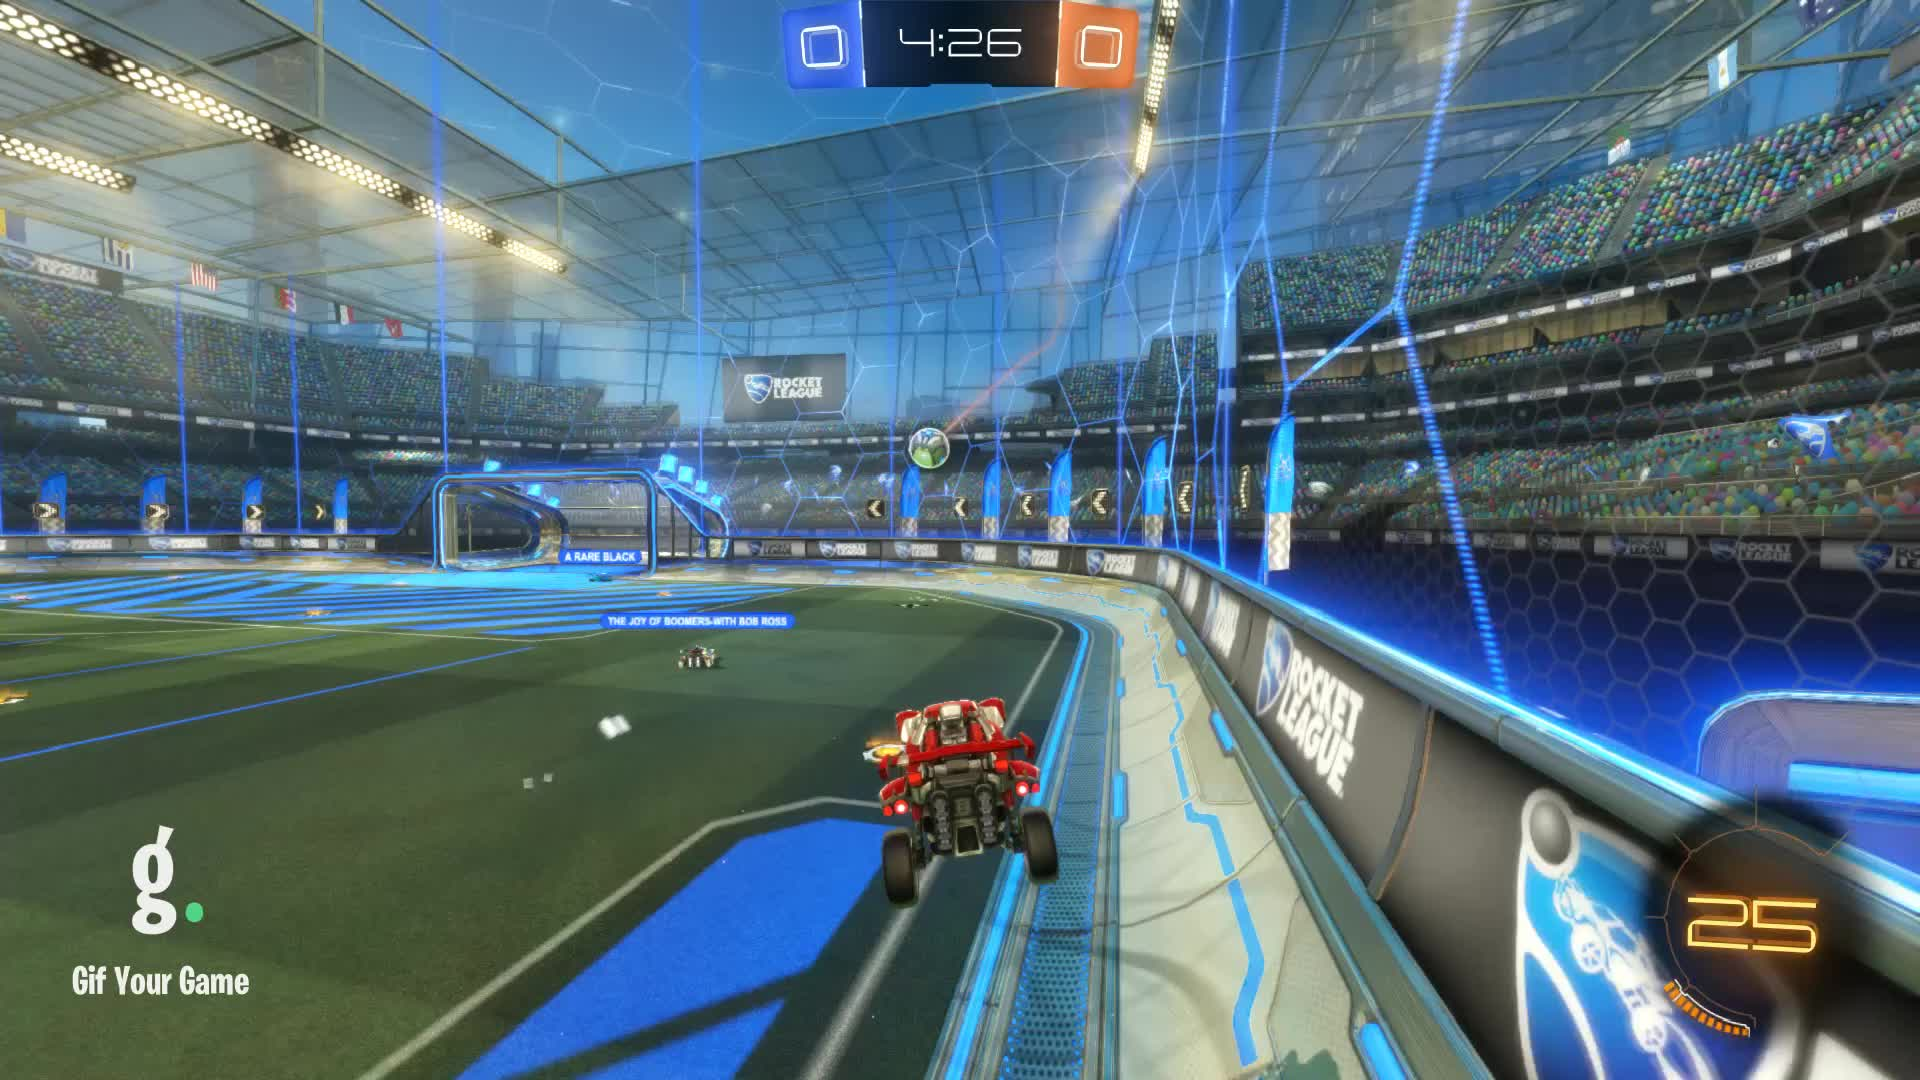 Gif Your Game, GifYourGame, Goal, Rocket League, RocketLeague, iLLixer, Goal 1: iLLixer GIFs